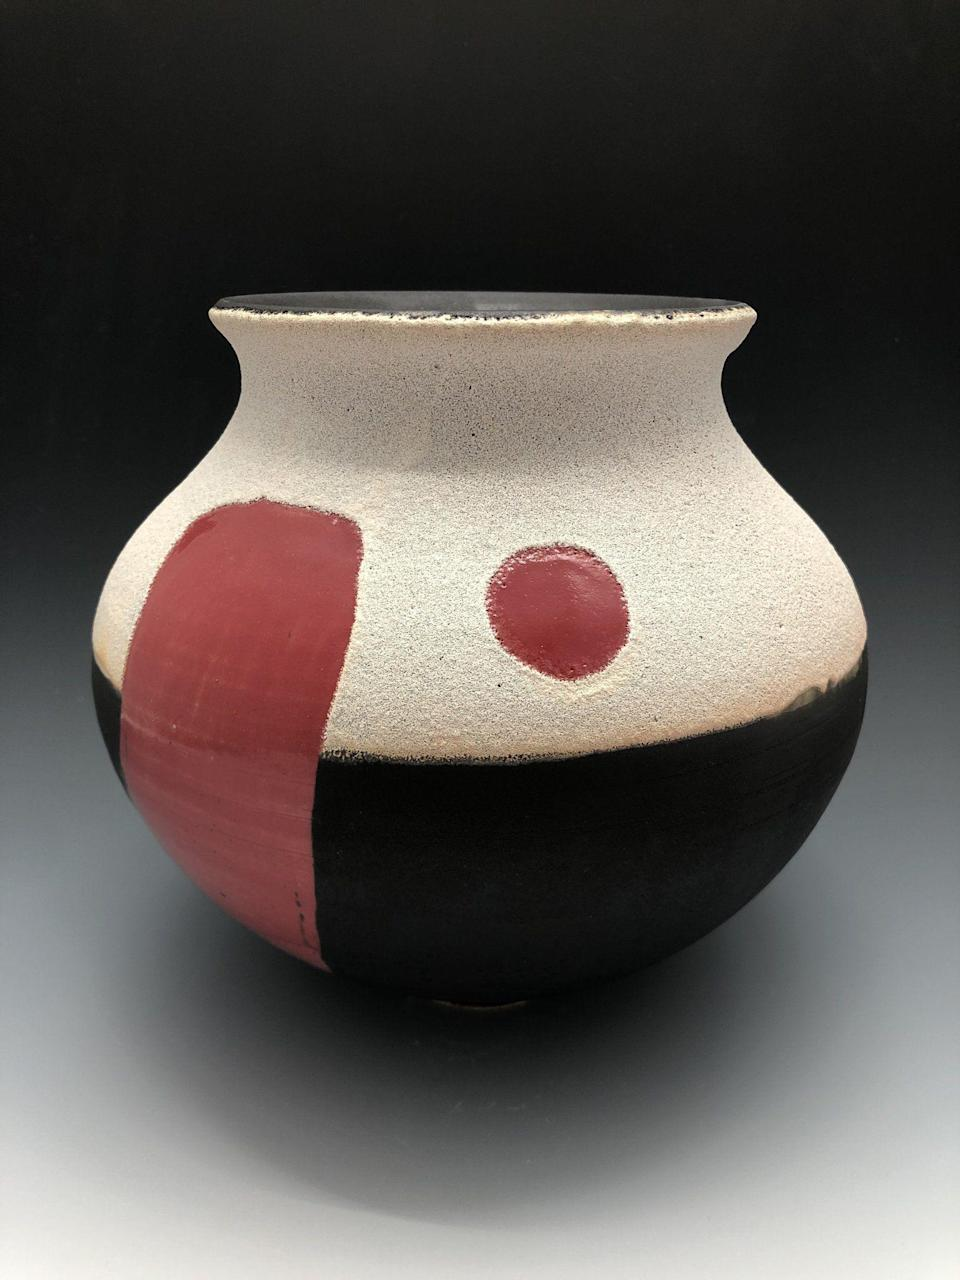 "<p>ceramicmeltdown.com</p><p><strong>$350.00</strong></p><p><a href=""https://ceramicmeltdown.com/collections/red-sun-vases/products/red-sun-vase-6"" rel=""nofollow noopener"" target=""_blank"" data-ylk=""slk:Shop Now"" class=""link rapid-noclick-resp"">Shop Now</a></p><p>Former tech professional, Kyle Lee is a ceramicist who uses bright colors on traditional forms. </p>"